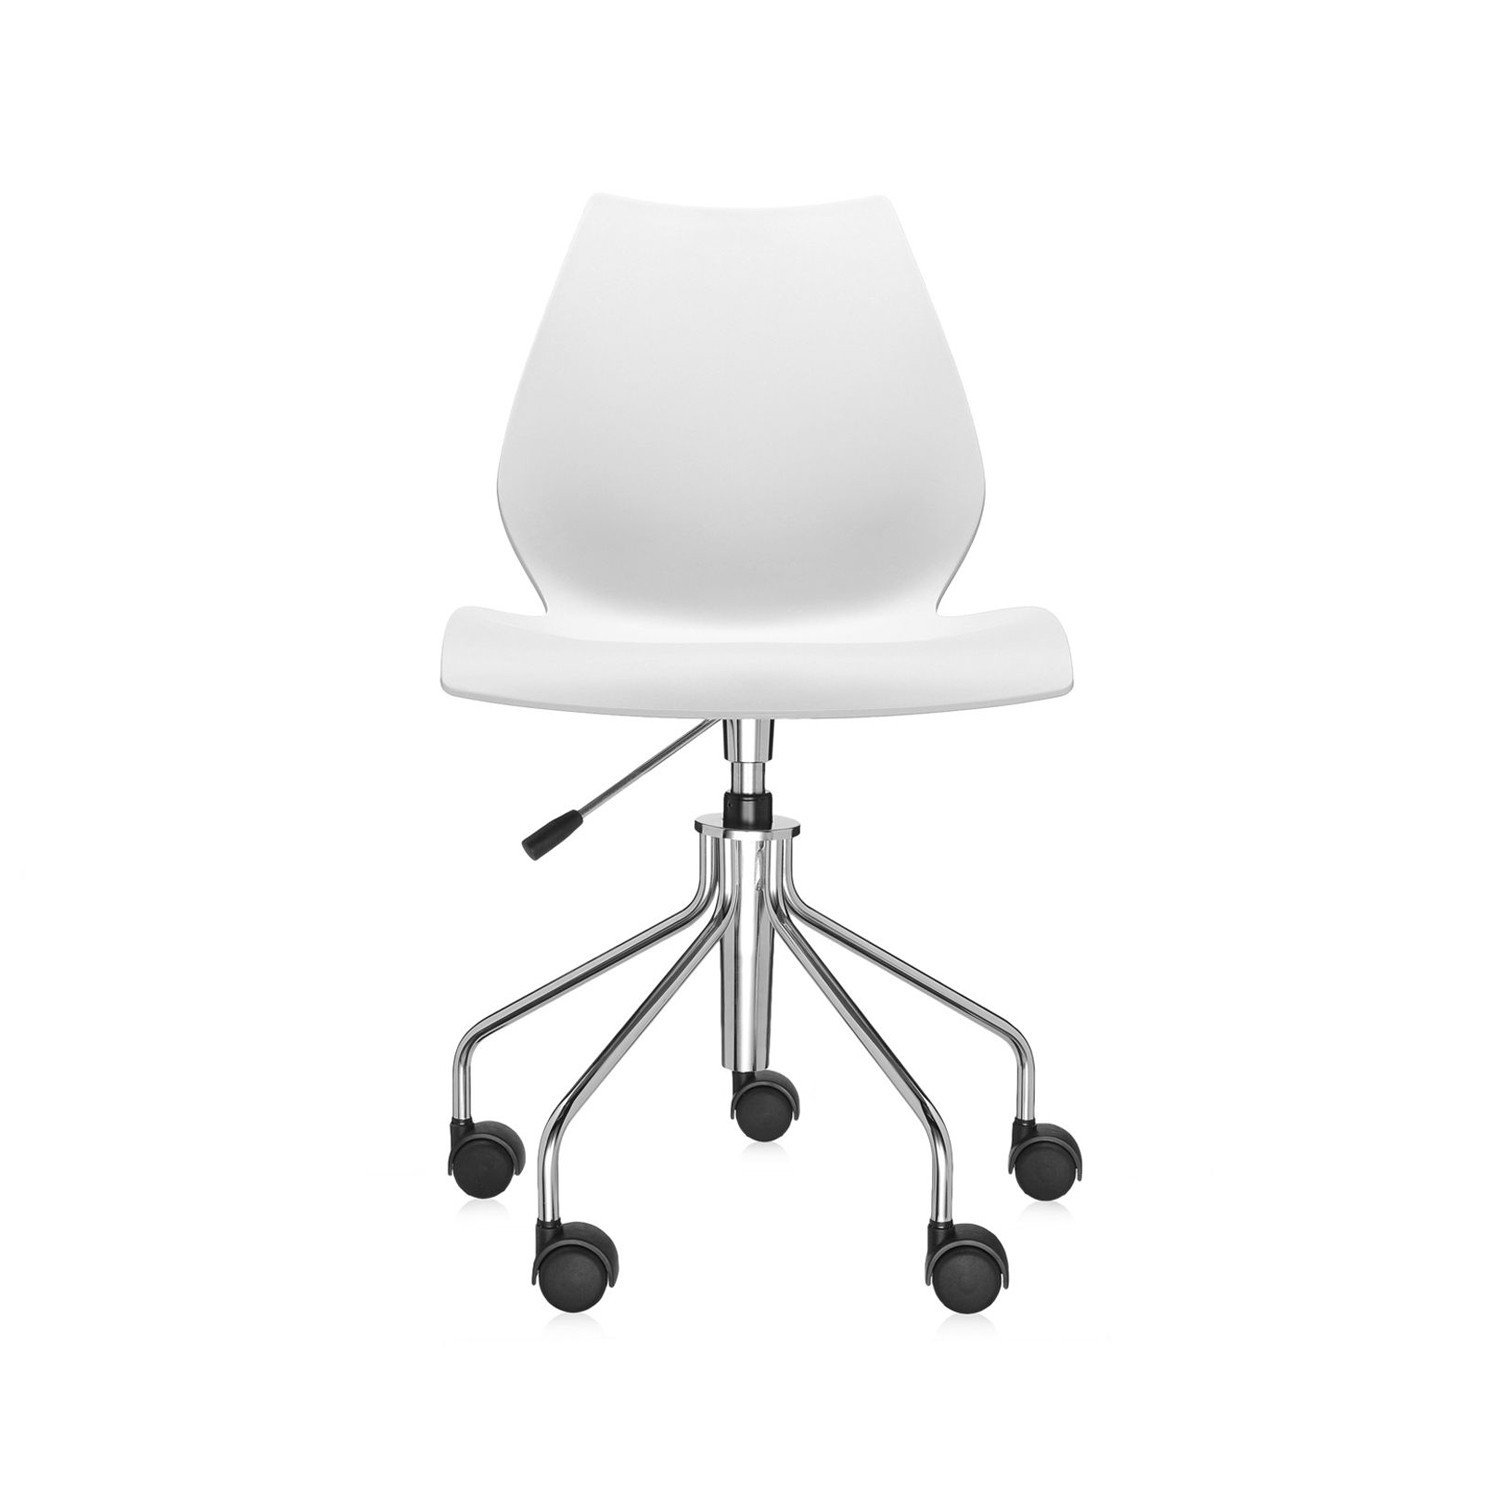 Kartell Maui Swivel Chair Height Adjustable By Lumens Dwell